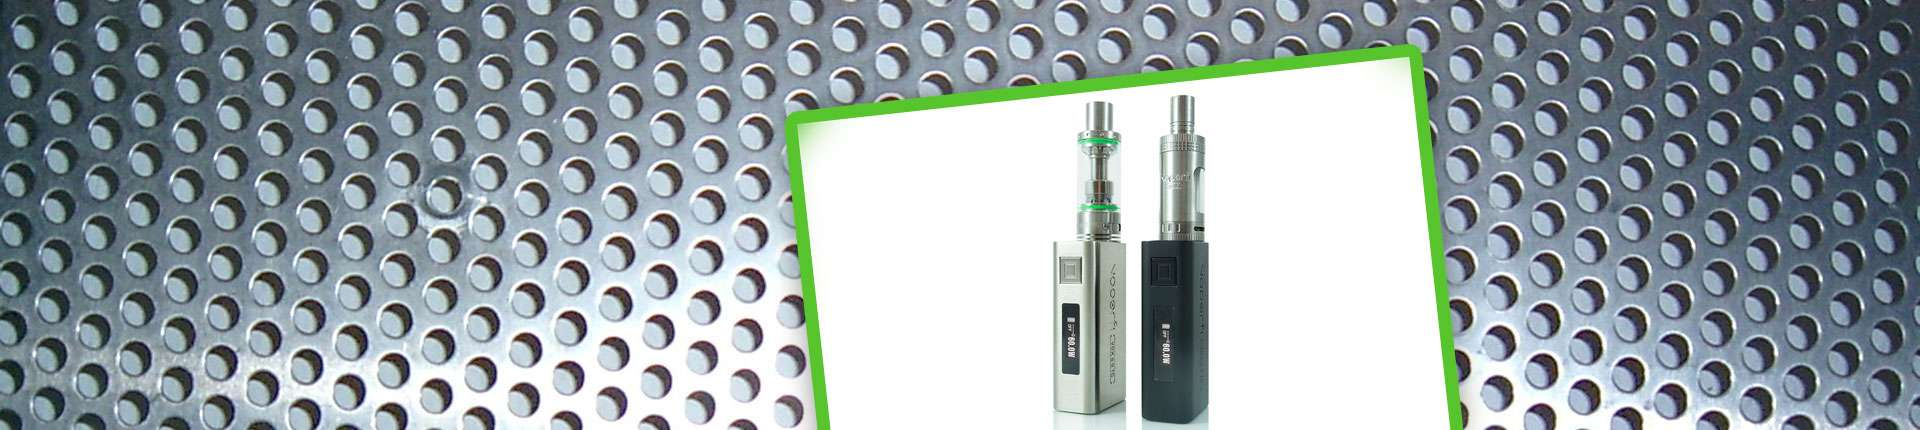 Get Ready: The VaporFi 60W TC Starter Kit is Here!